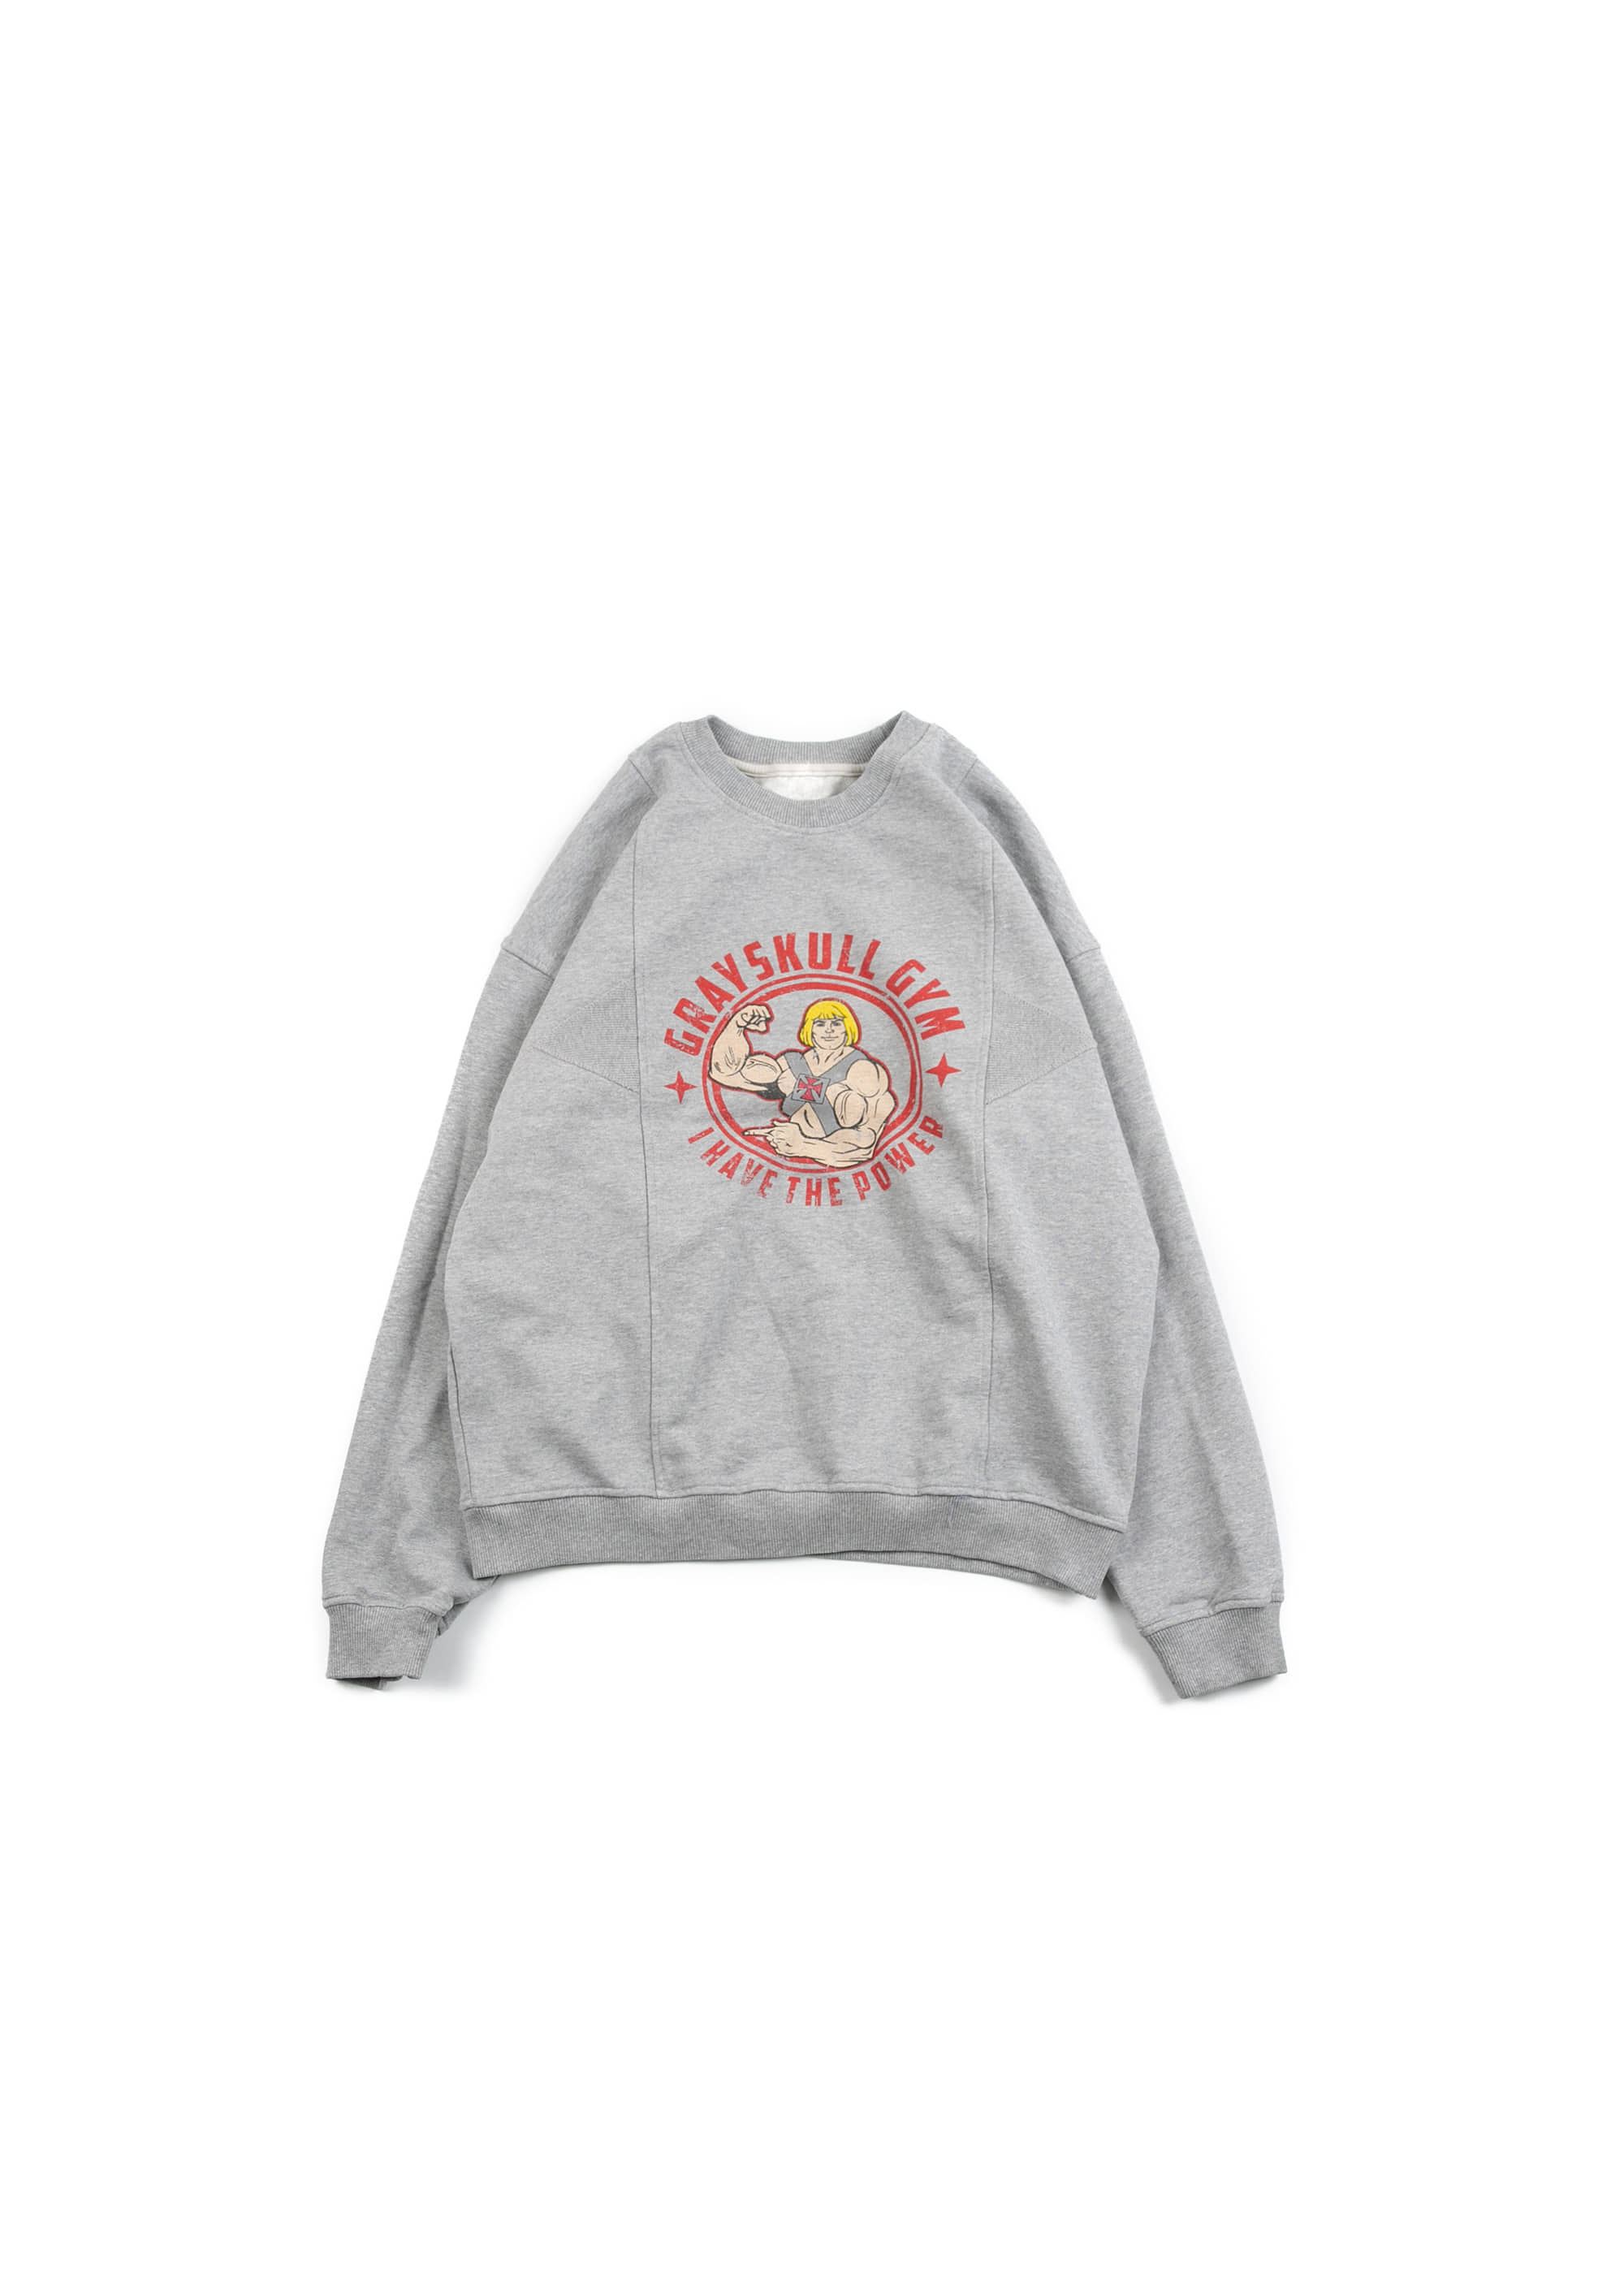 He Man & Skeelletor Sweat Shirts - Grey